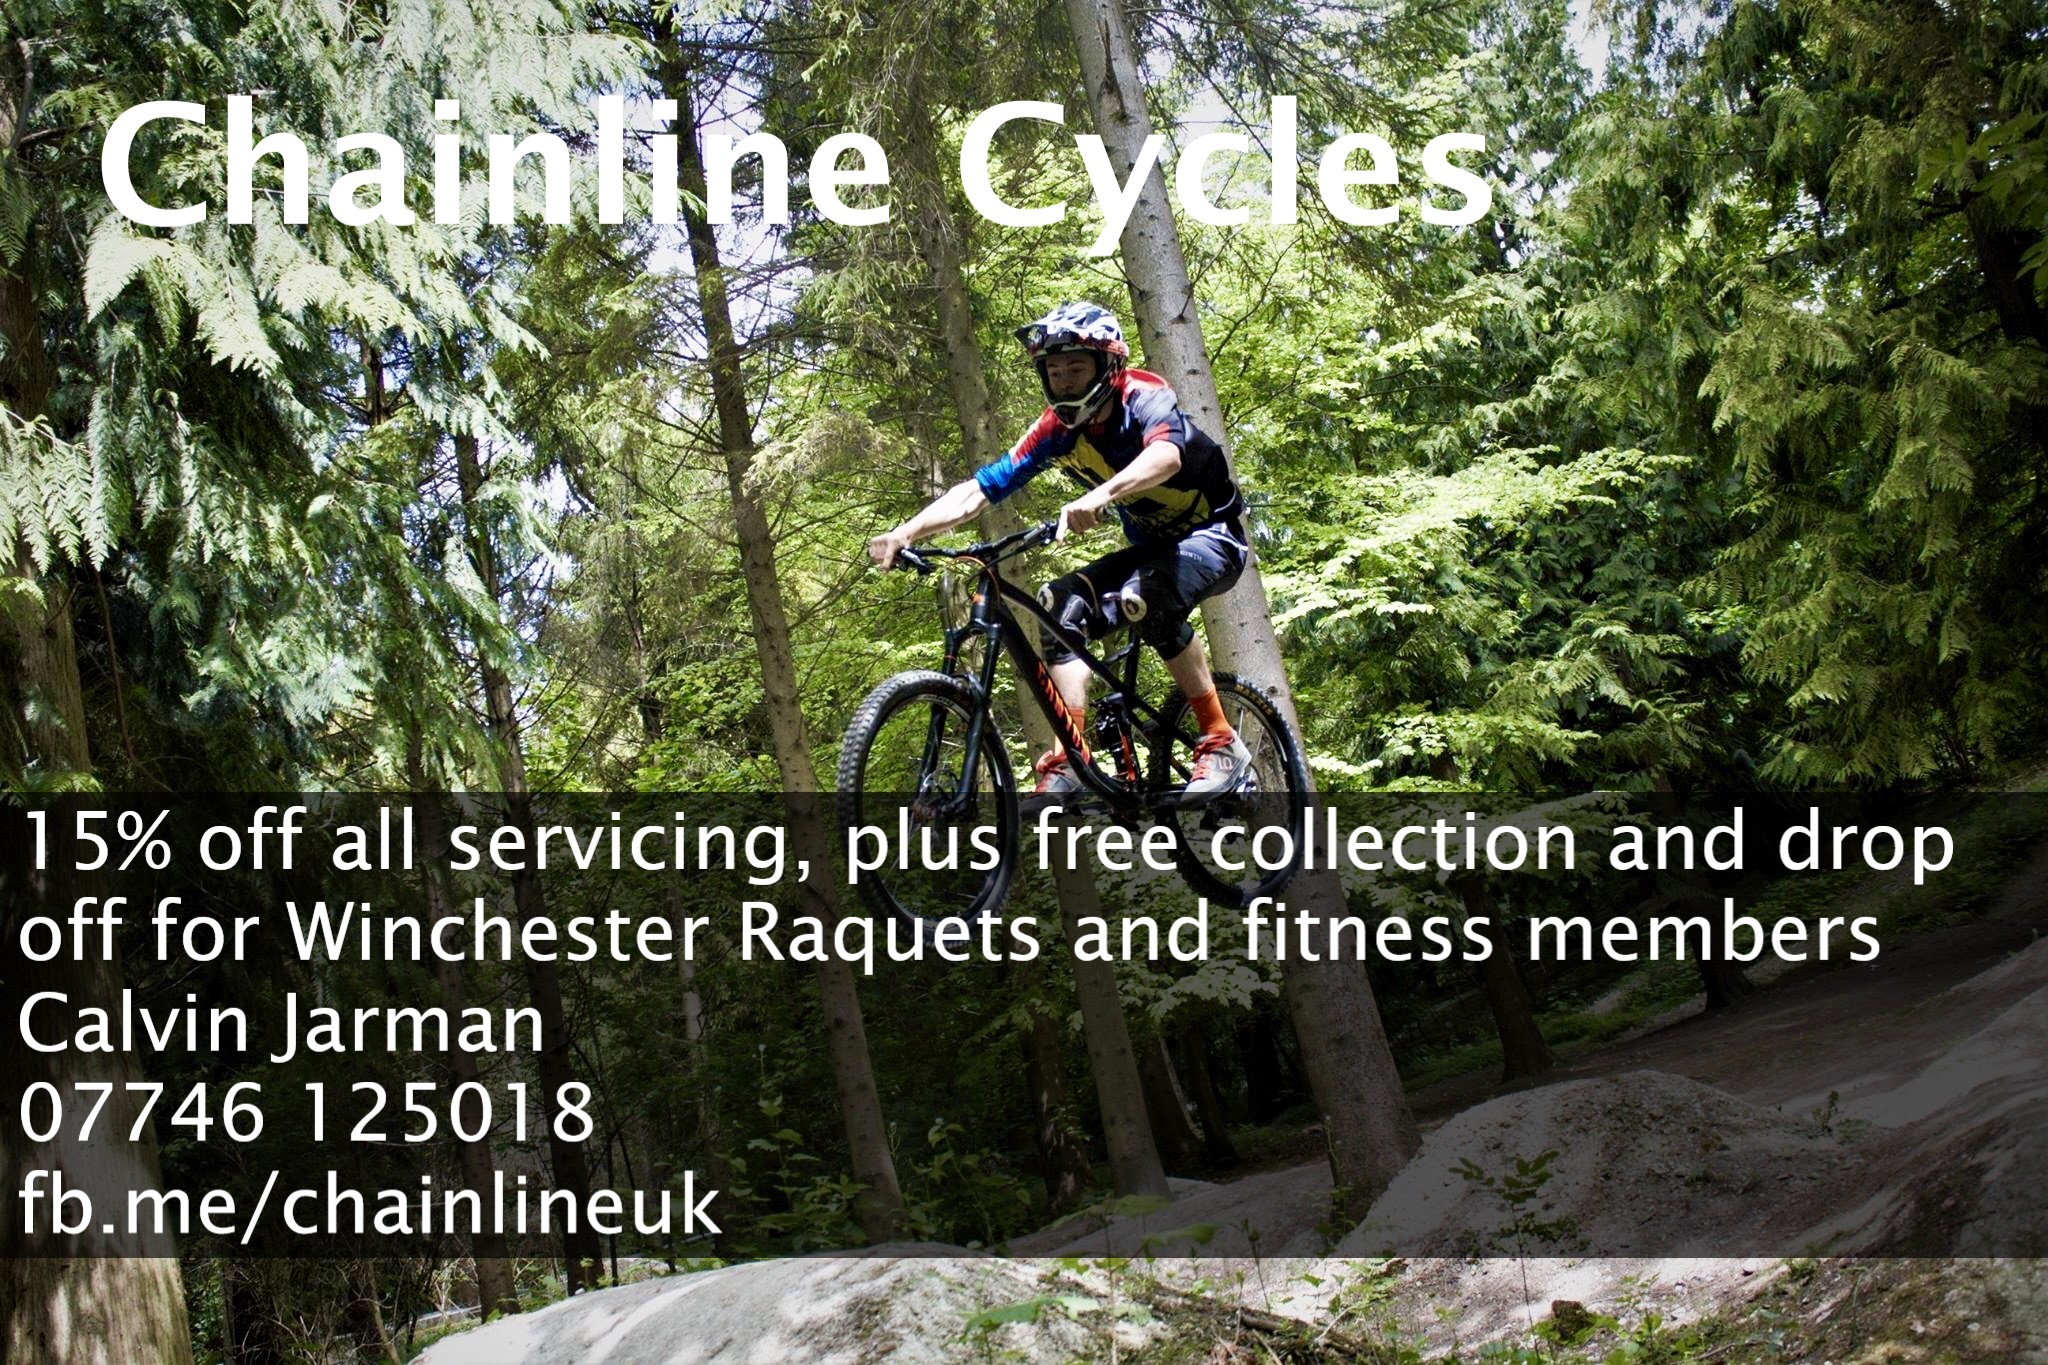 Cycle repairs and maintenance  - special offer for members